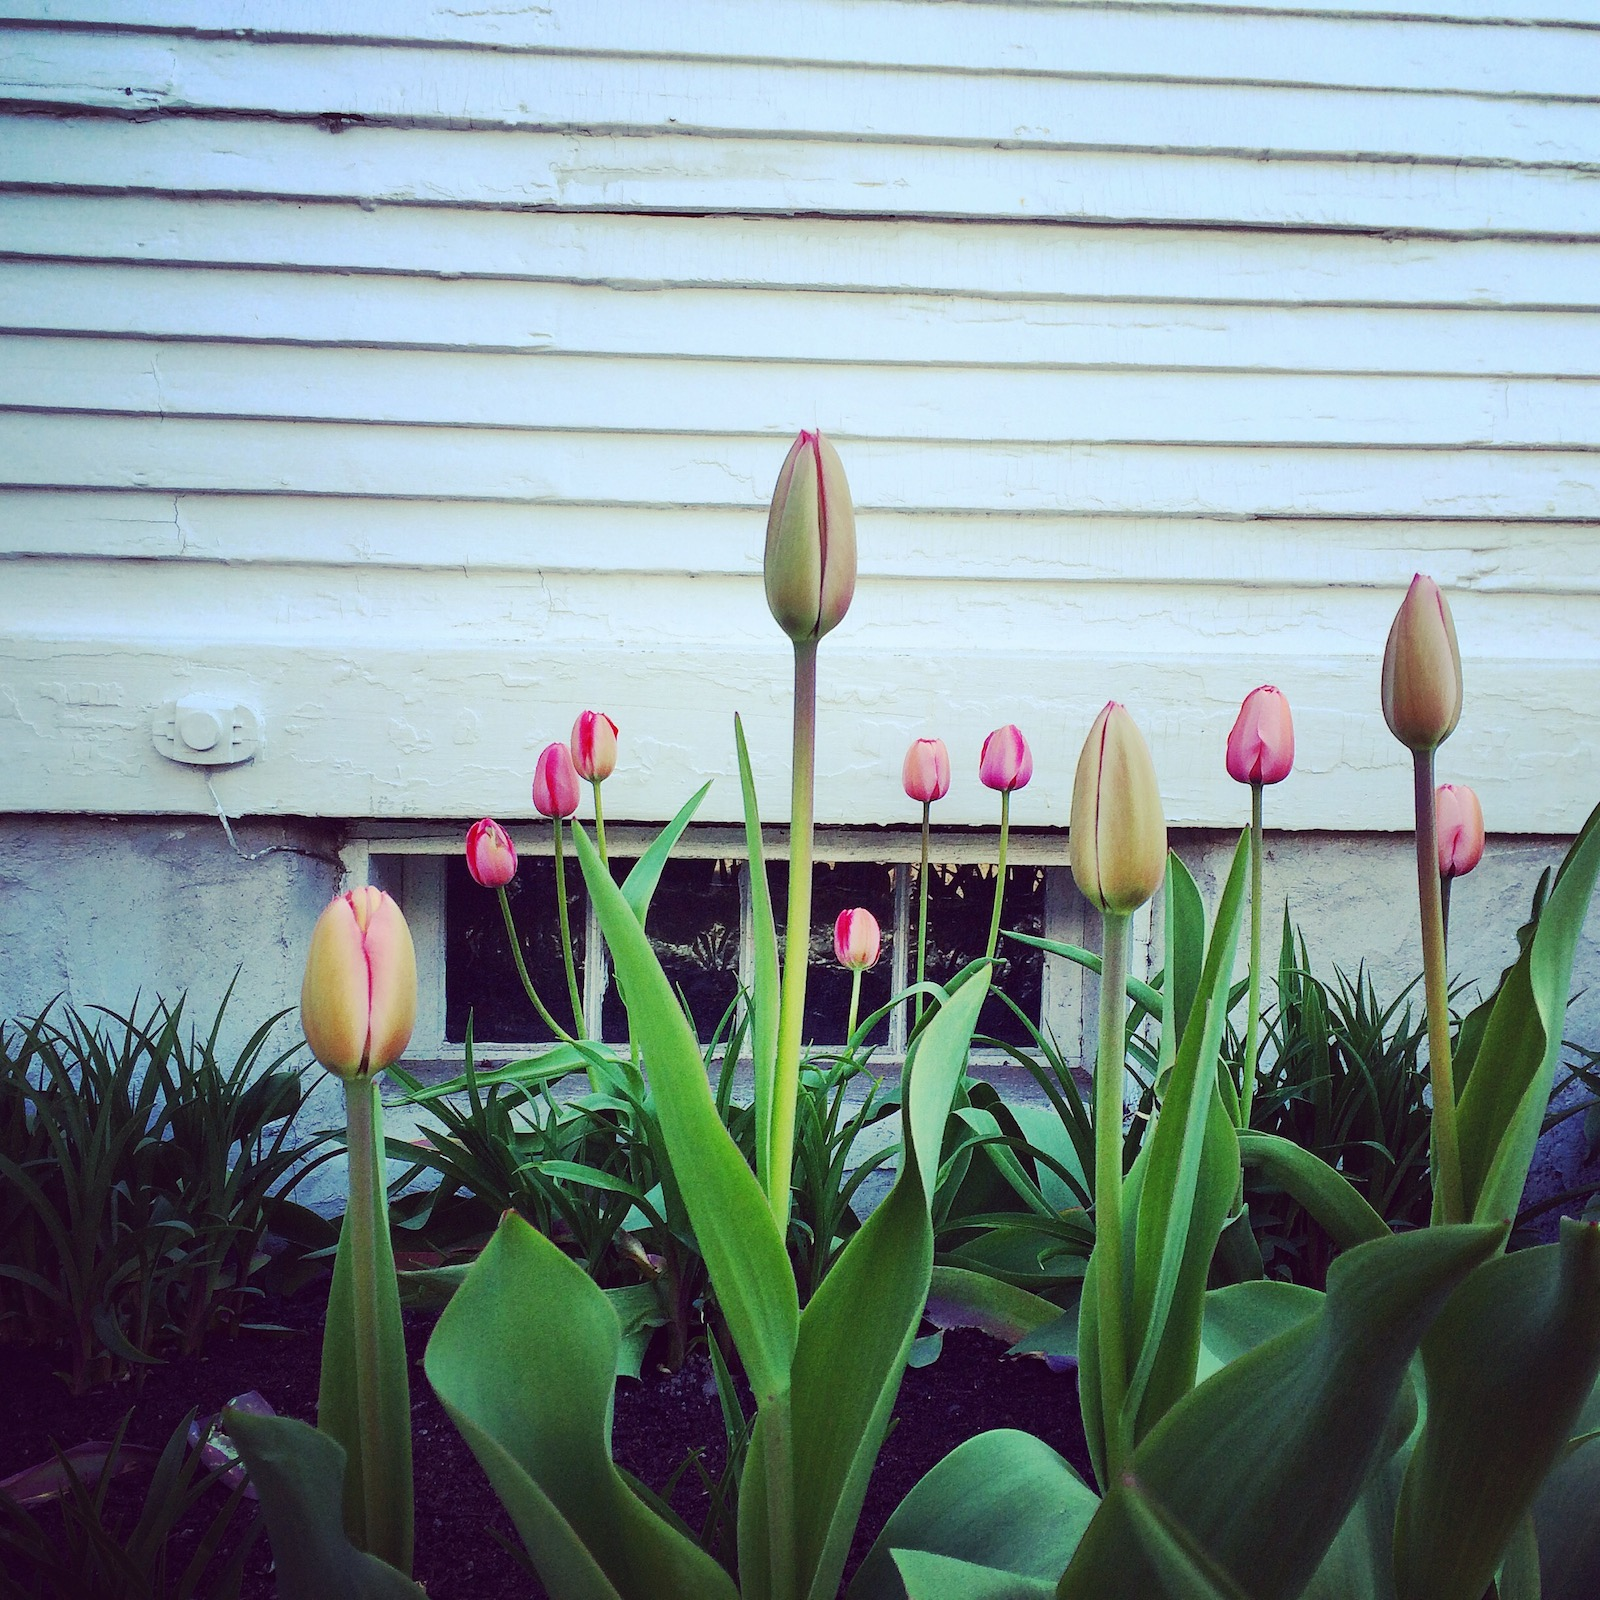 Tulips in Maine. Spring is here.